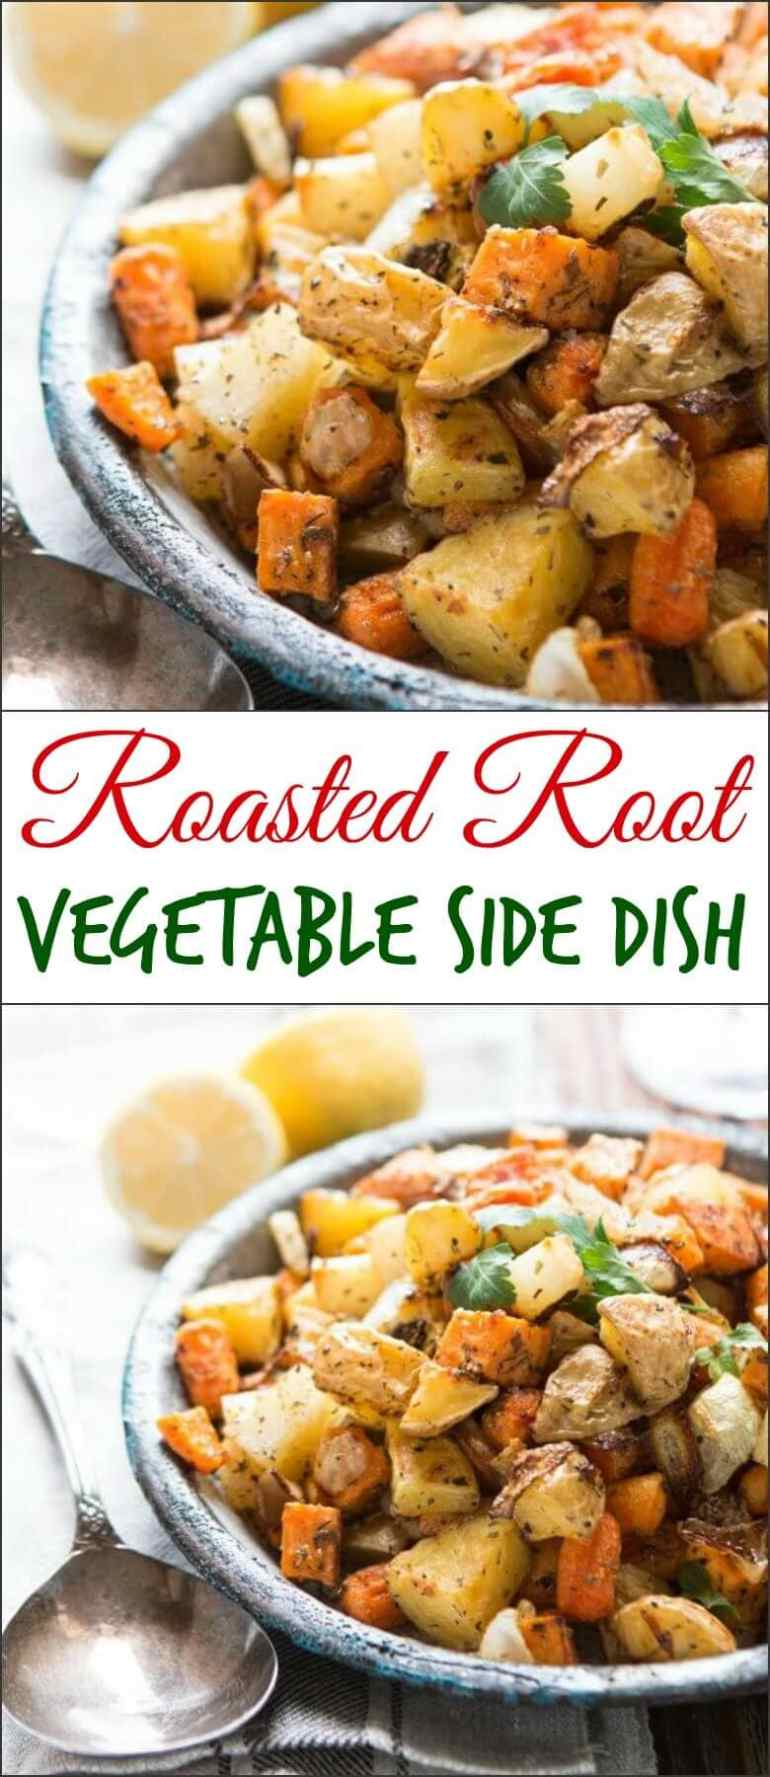 One of our favorite side dishes can also be made into a simple main dish! Roasted root vegetable side dish with simple herbs! Whole 30, paleo, gluten-free, dairy-free